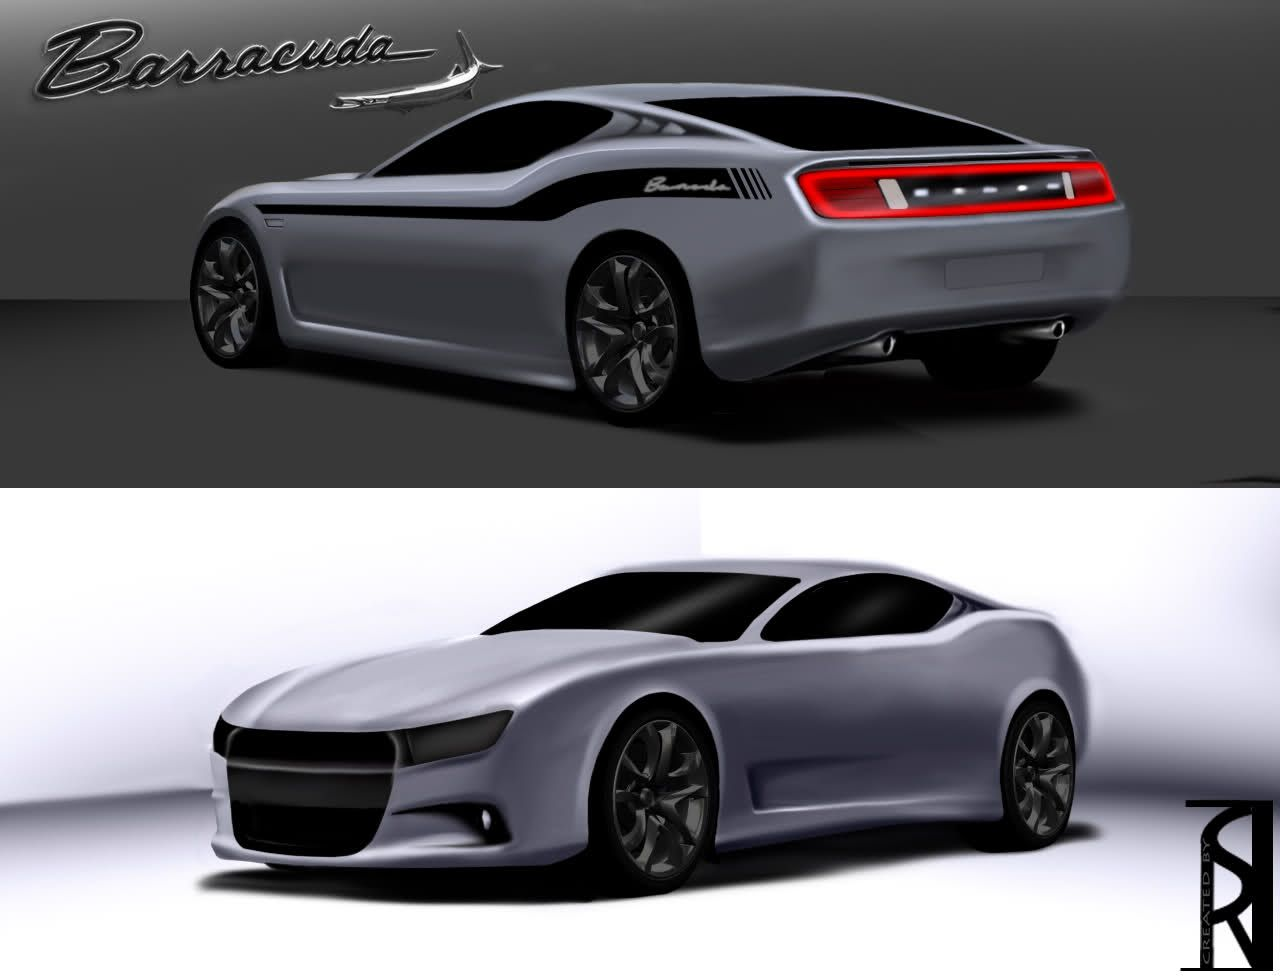 The 25 best 2015 dodge barracuda ideas on pinterest concept cars 2015 dodge challenger hemi and dodge muscle cars